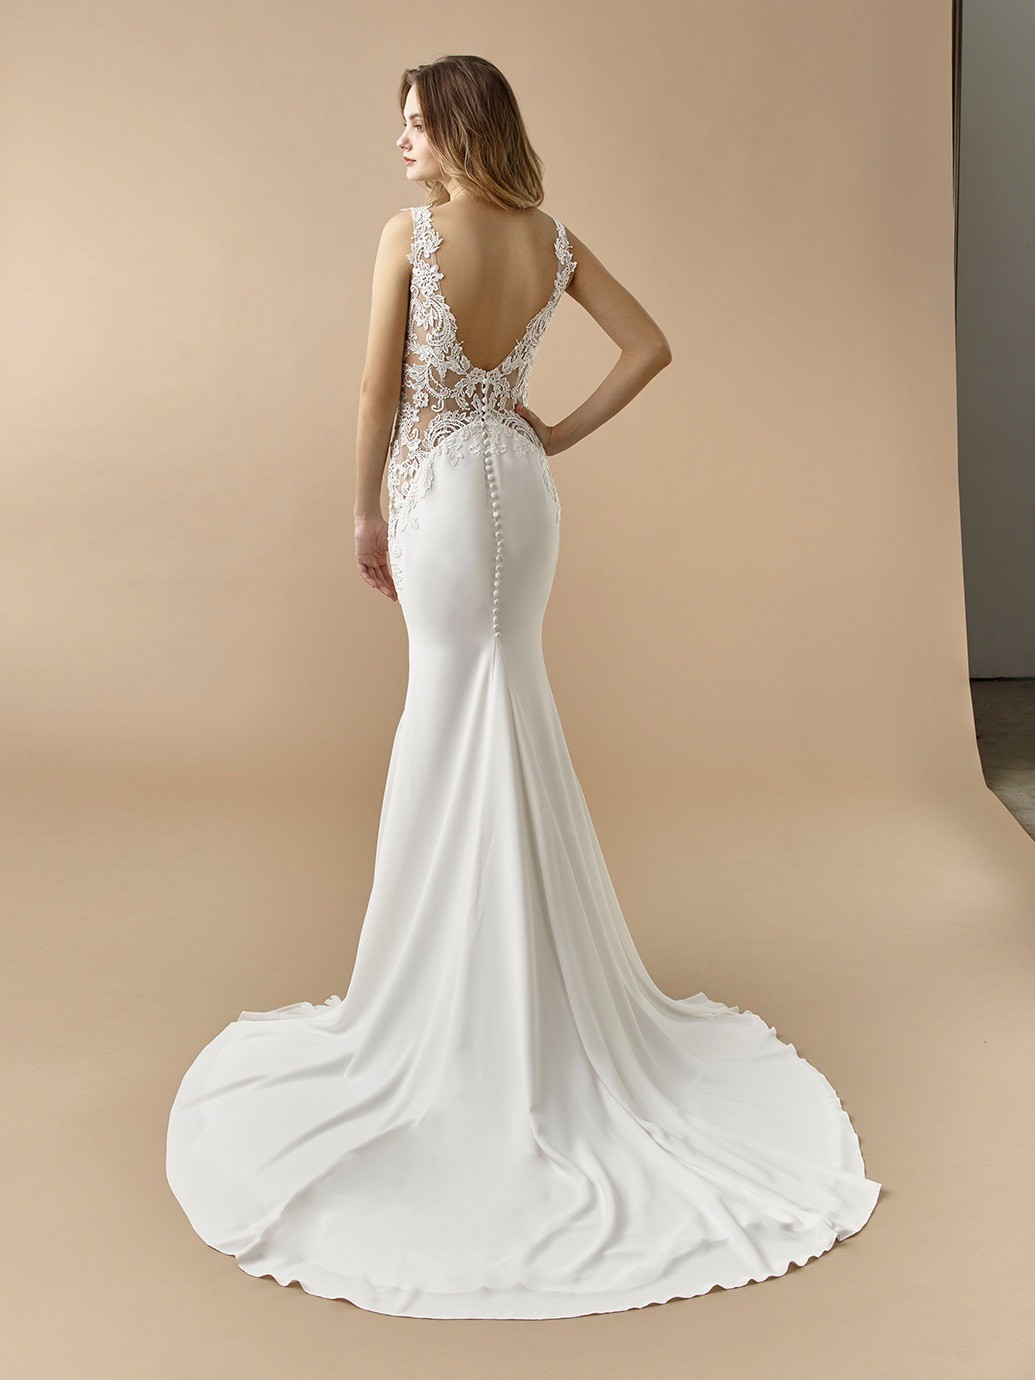 Brautkleid Modell BT20-19 aus der Beautiful Bridal Kollektion 2020